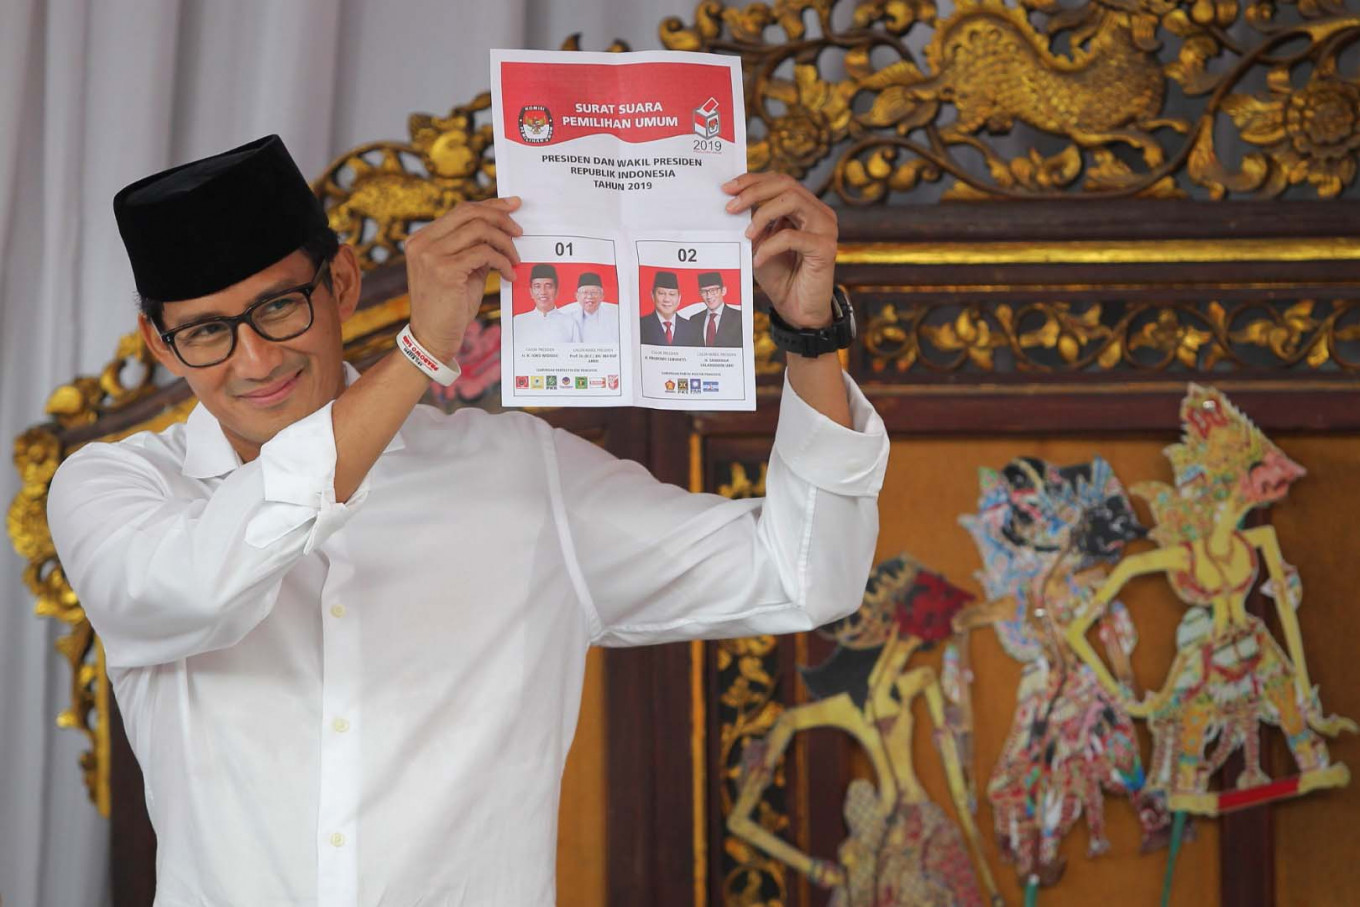 I want to take a break from politics: Sandiaga